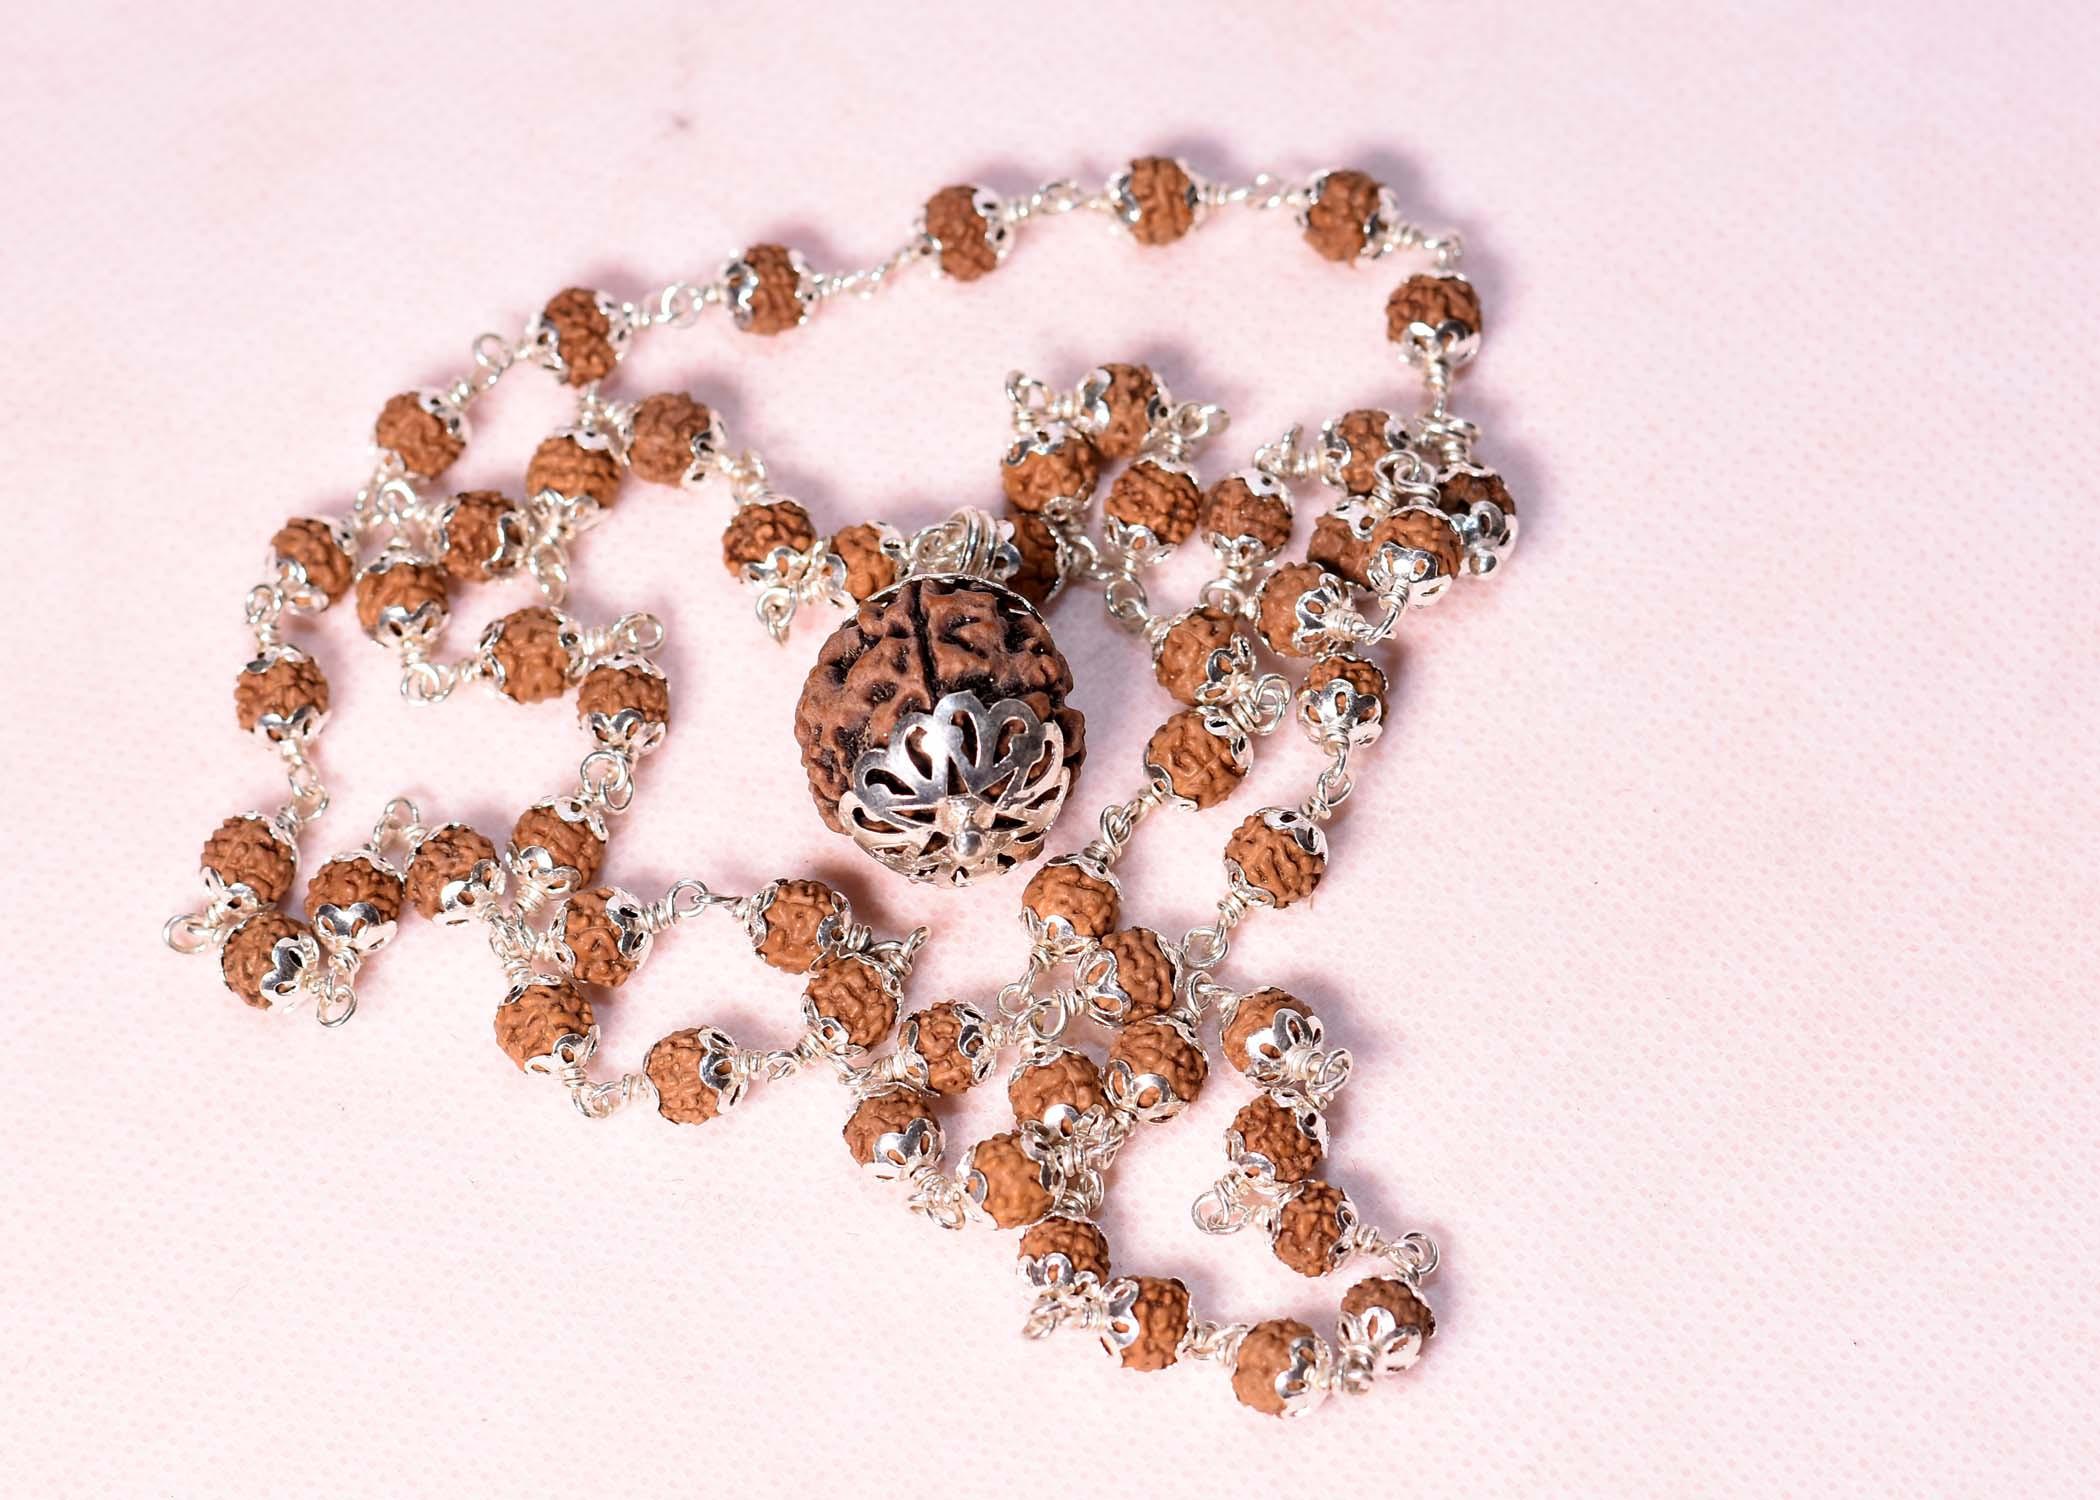 silver covered rudraksha with 6 mukhi pendant